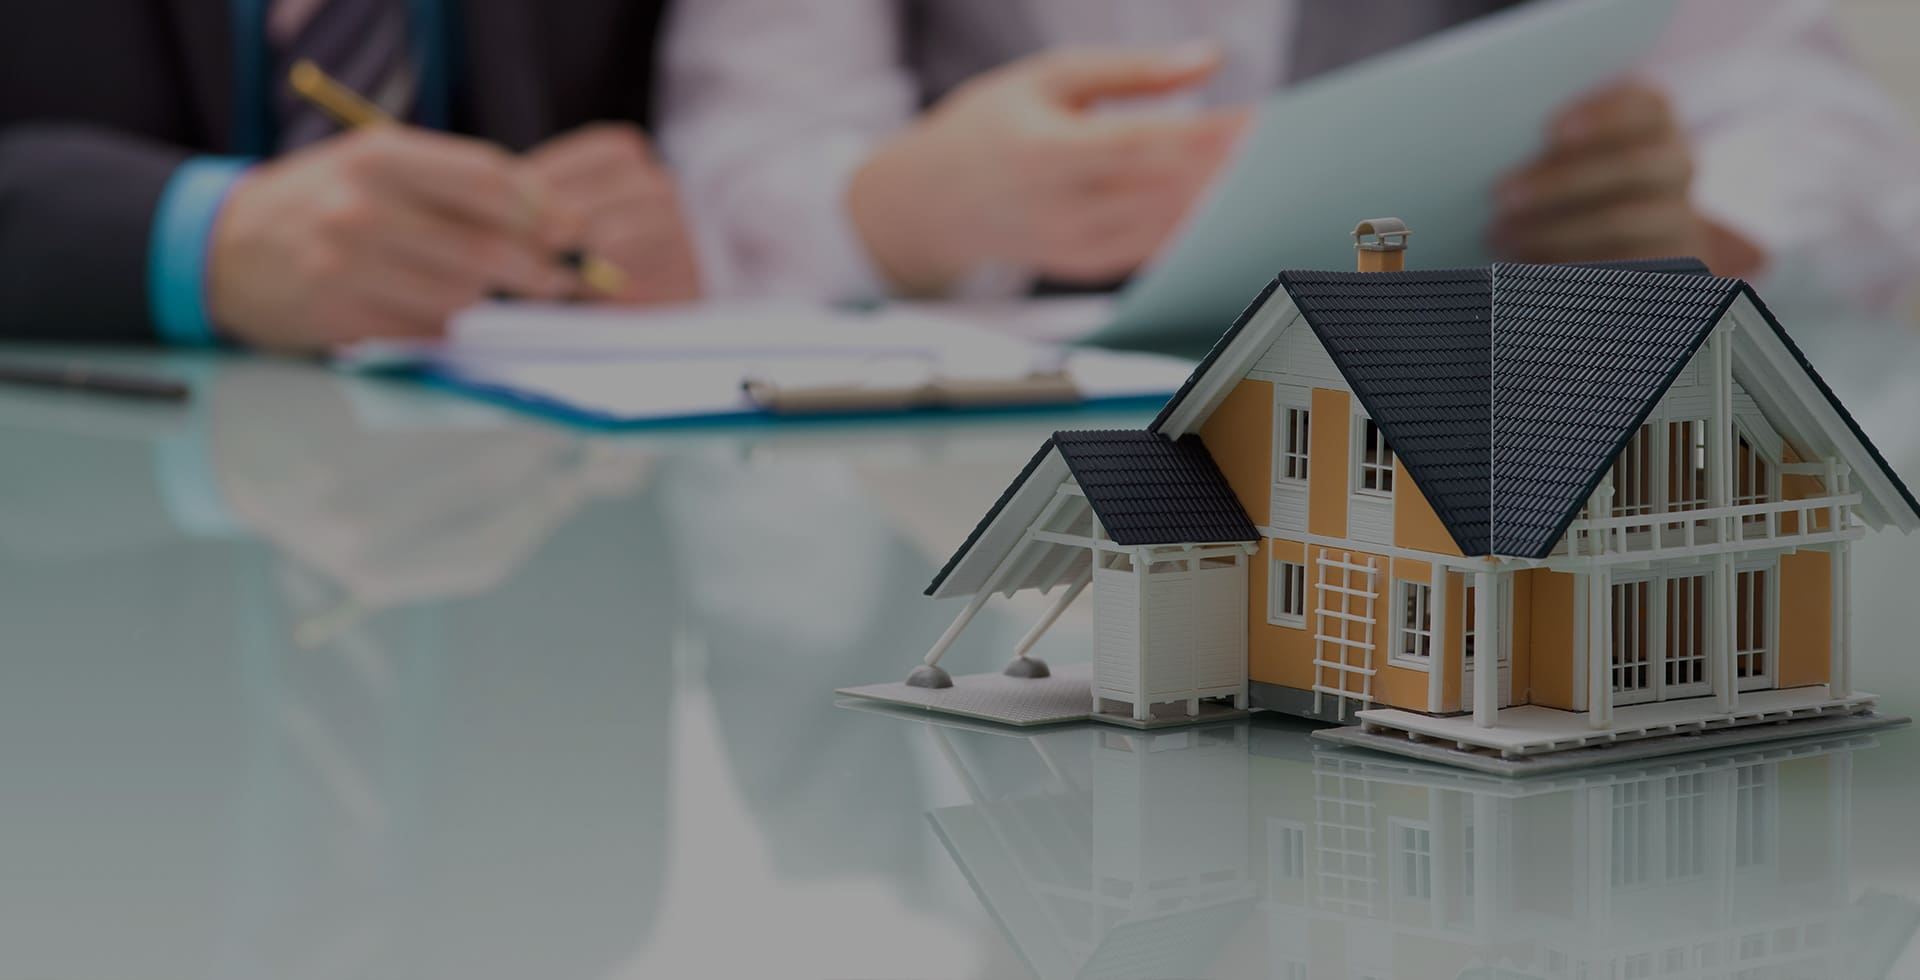 Home Warranty Plans Coverage And Cost Choice Home Warranty